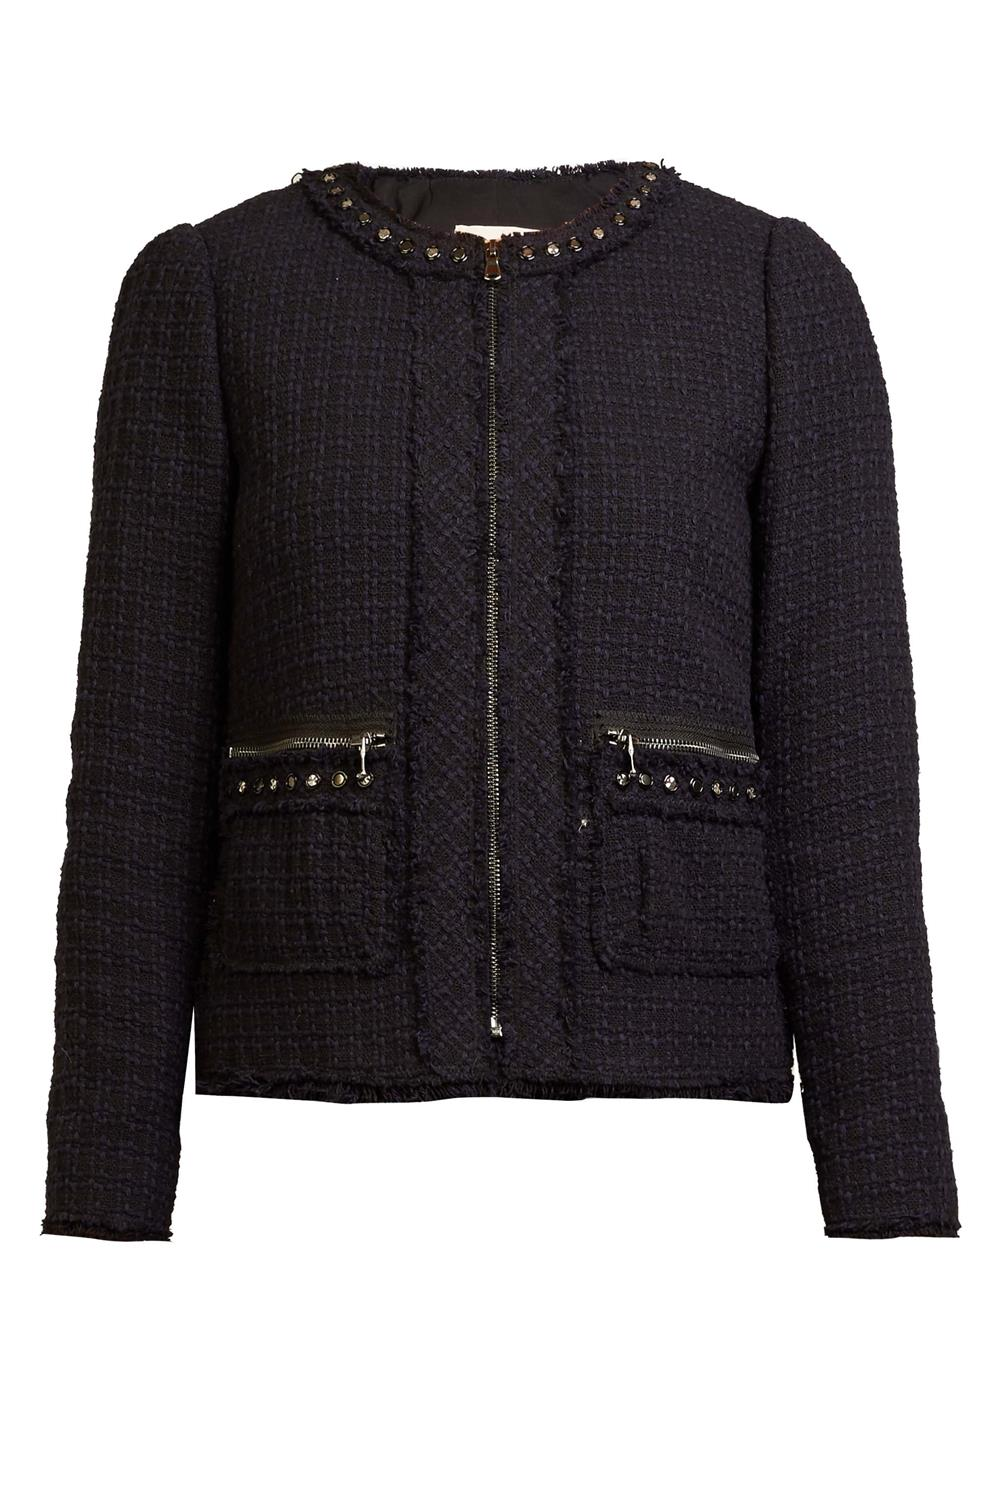 Tweed-Embellished-Jacket-in-Navy-Black-Rebecca-Taylor.jpg